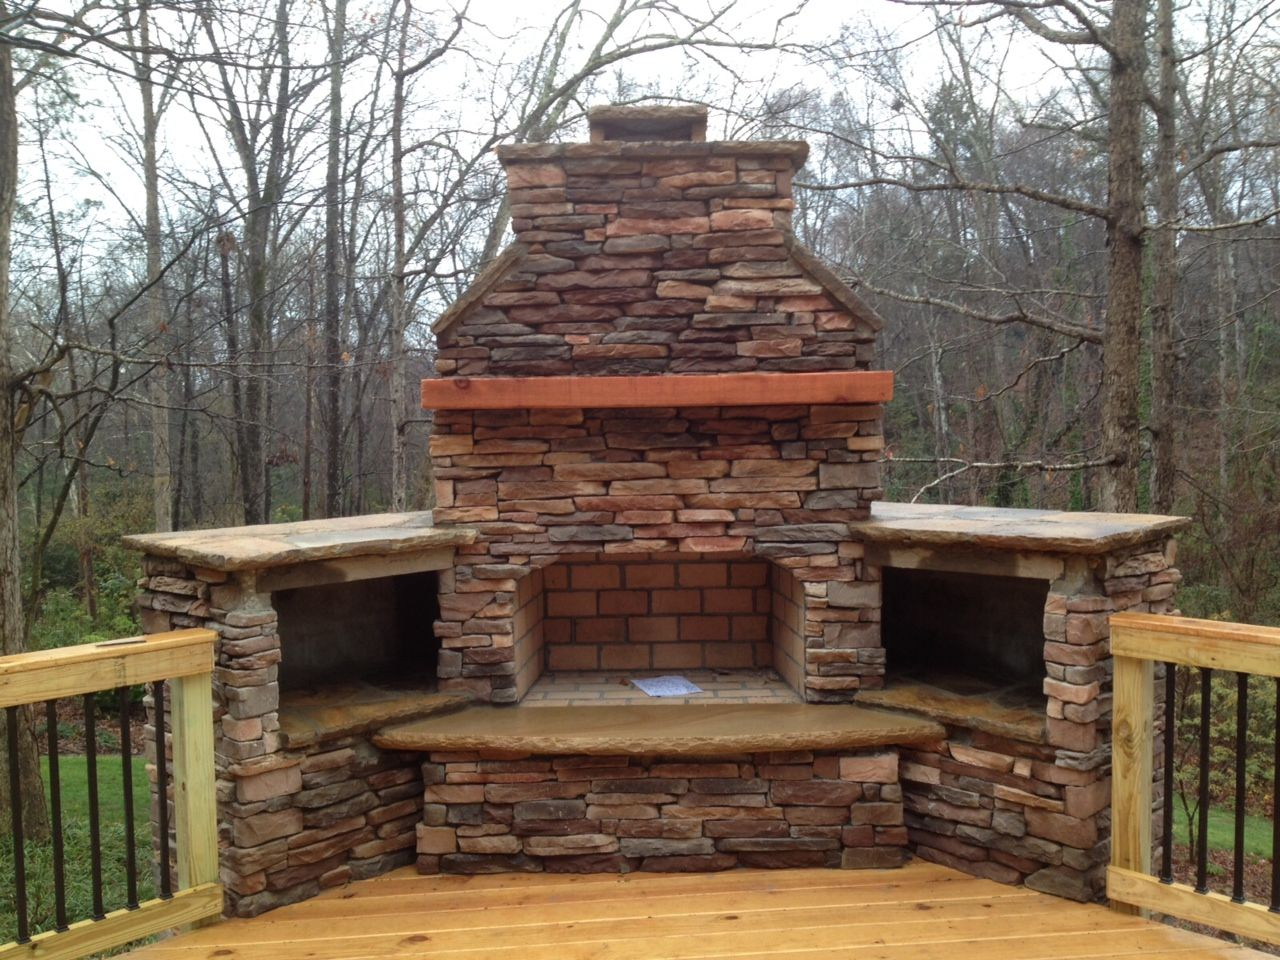 Outdoor Fireplace On Wood Deck With Deckorator Balusters Deck Fireplace Outdoor Fireplace Outdoor Wood